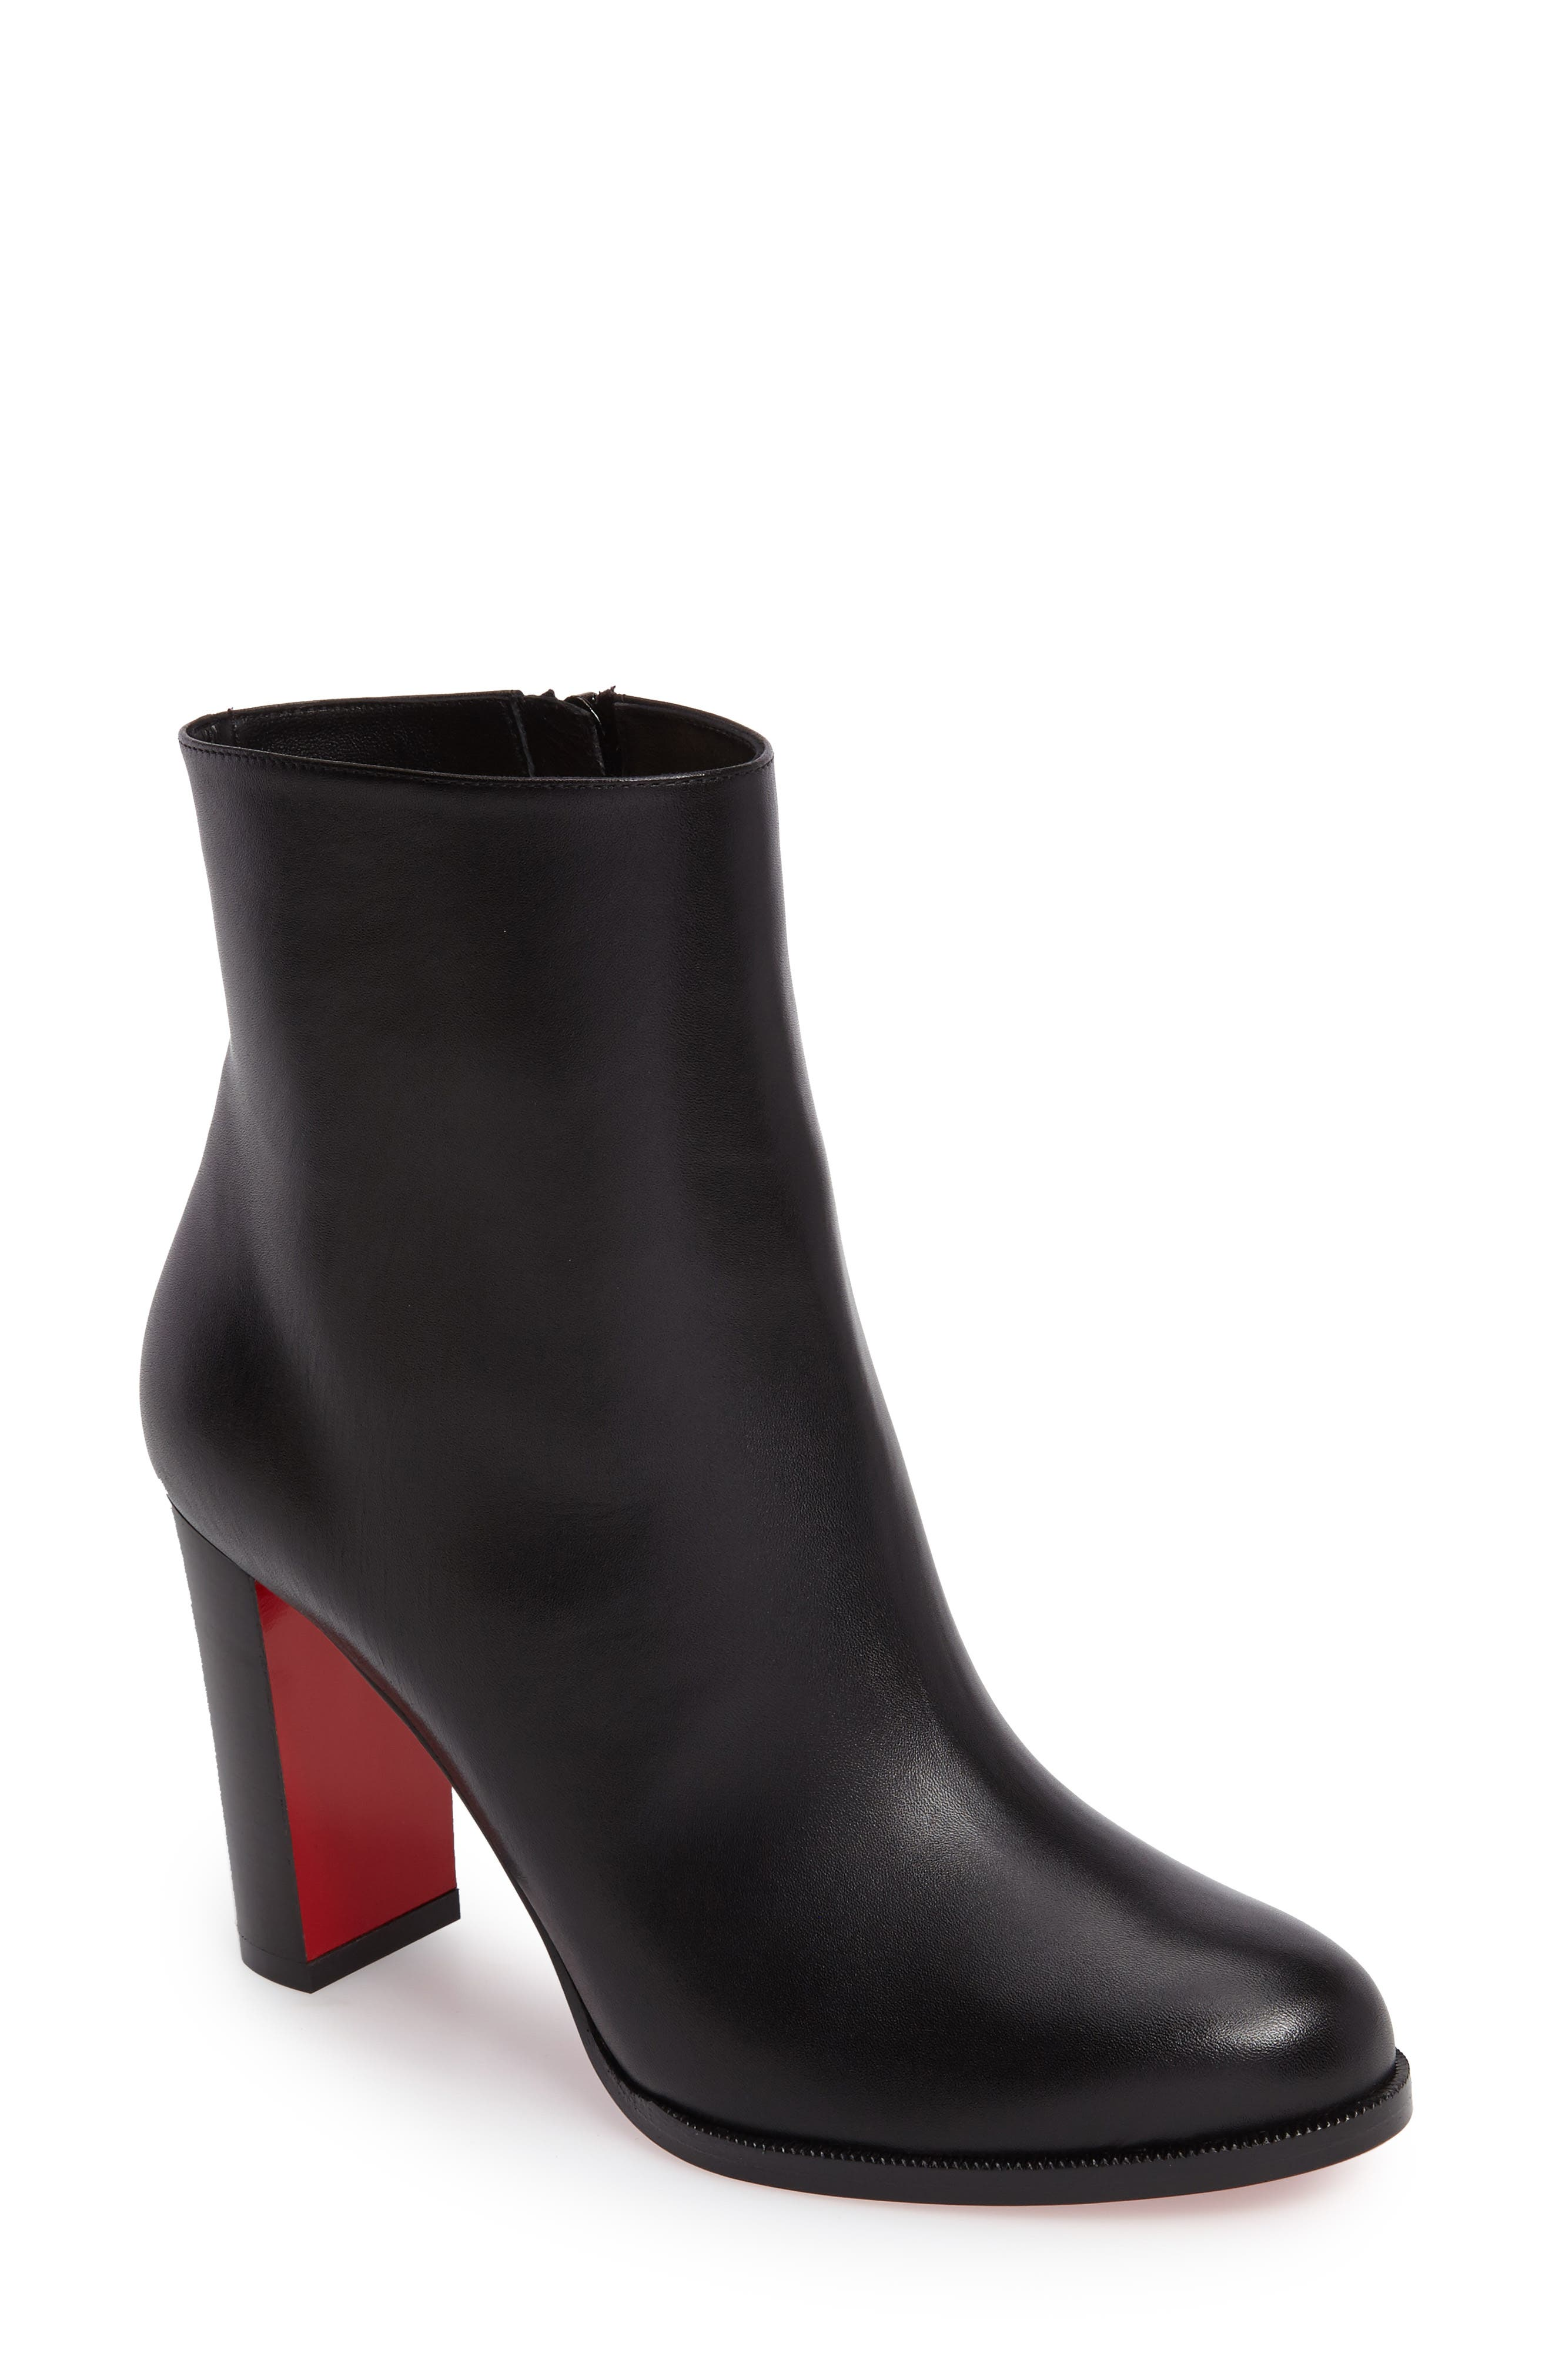 CHRISTIAN LOUBOUTIN, Adox Boot, Main thumbnail 1, color, BLACK LEATHER